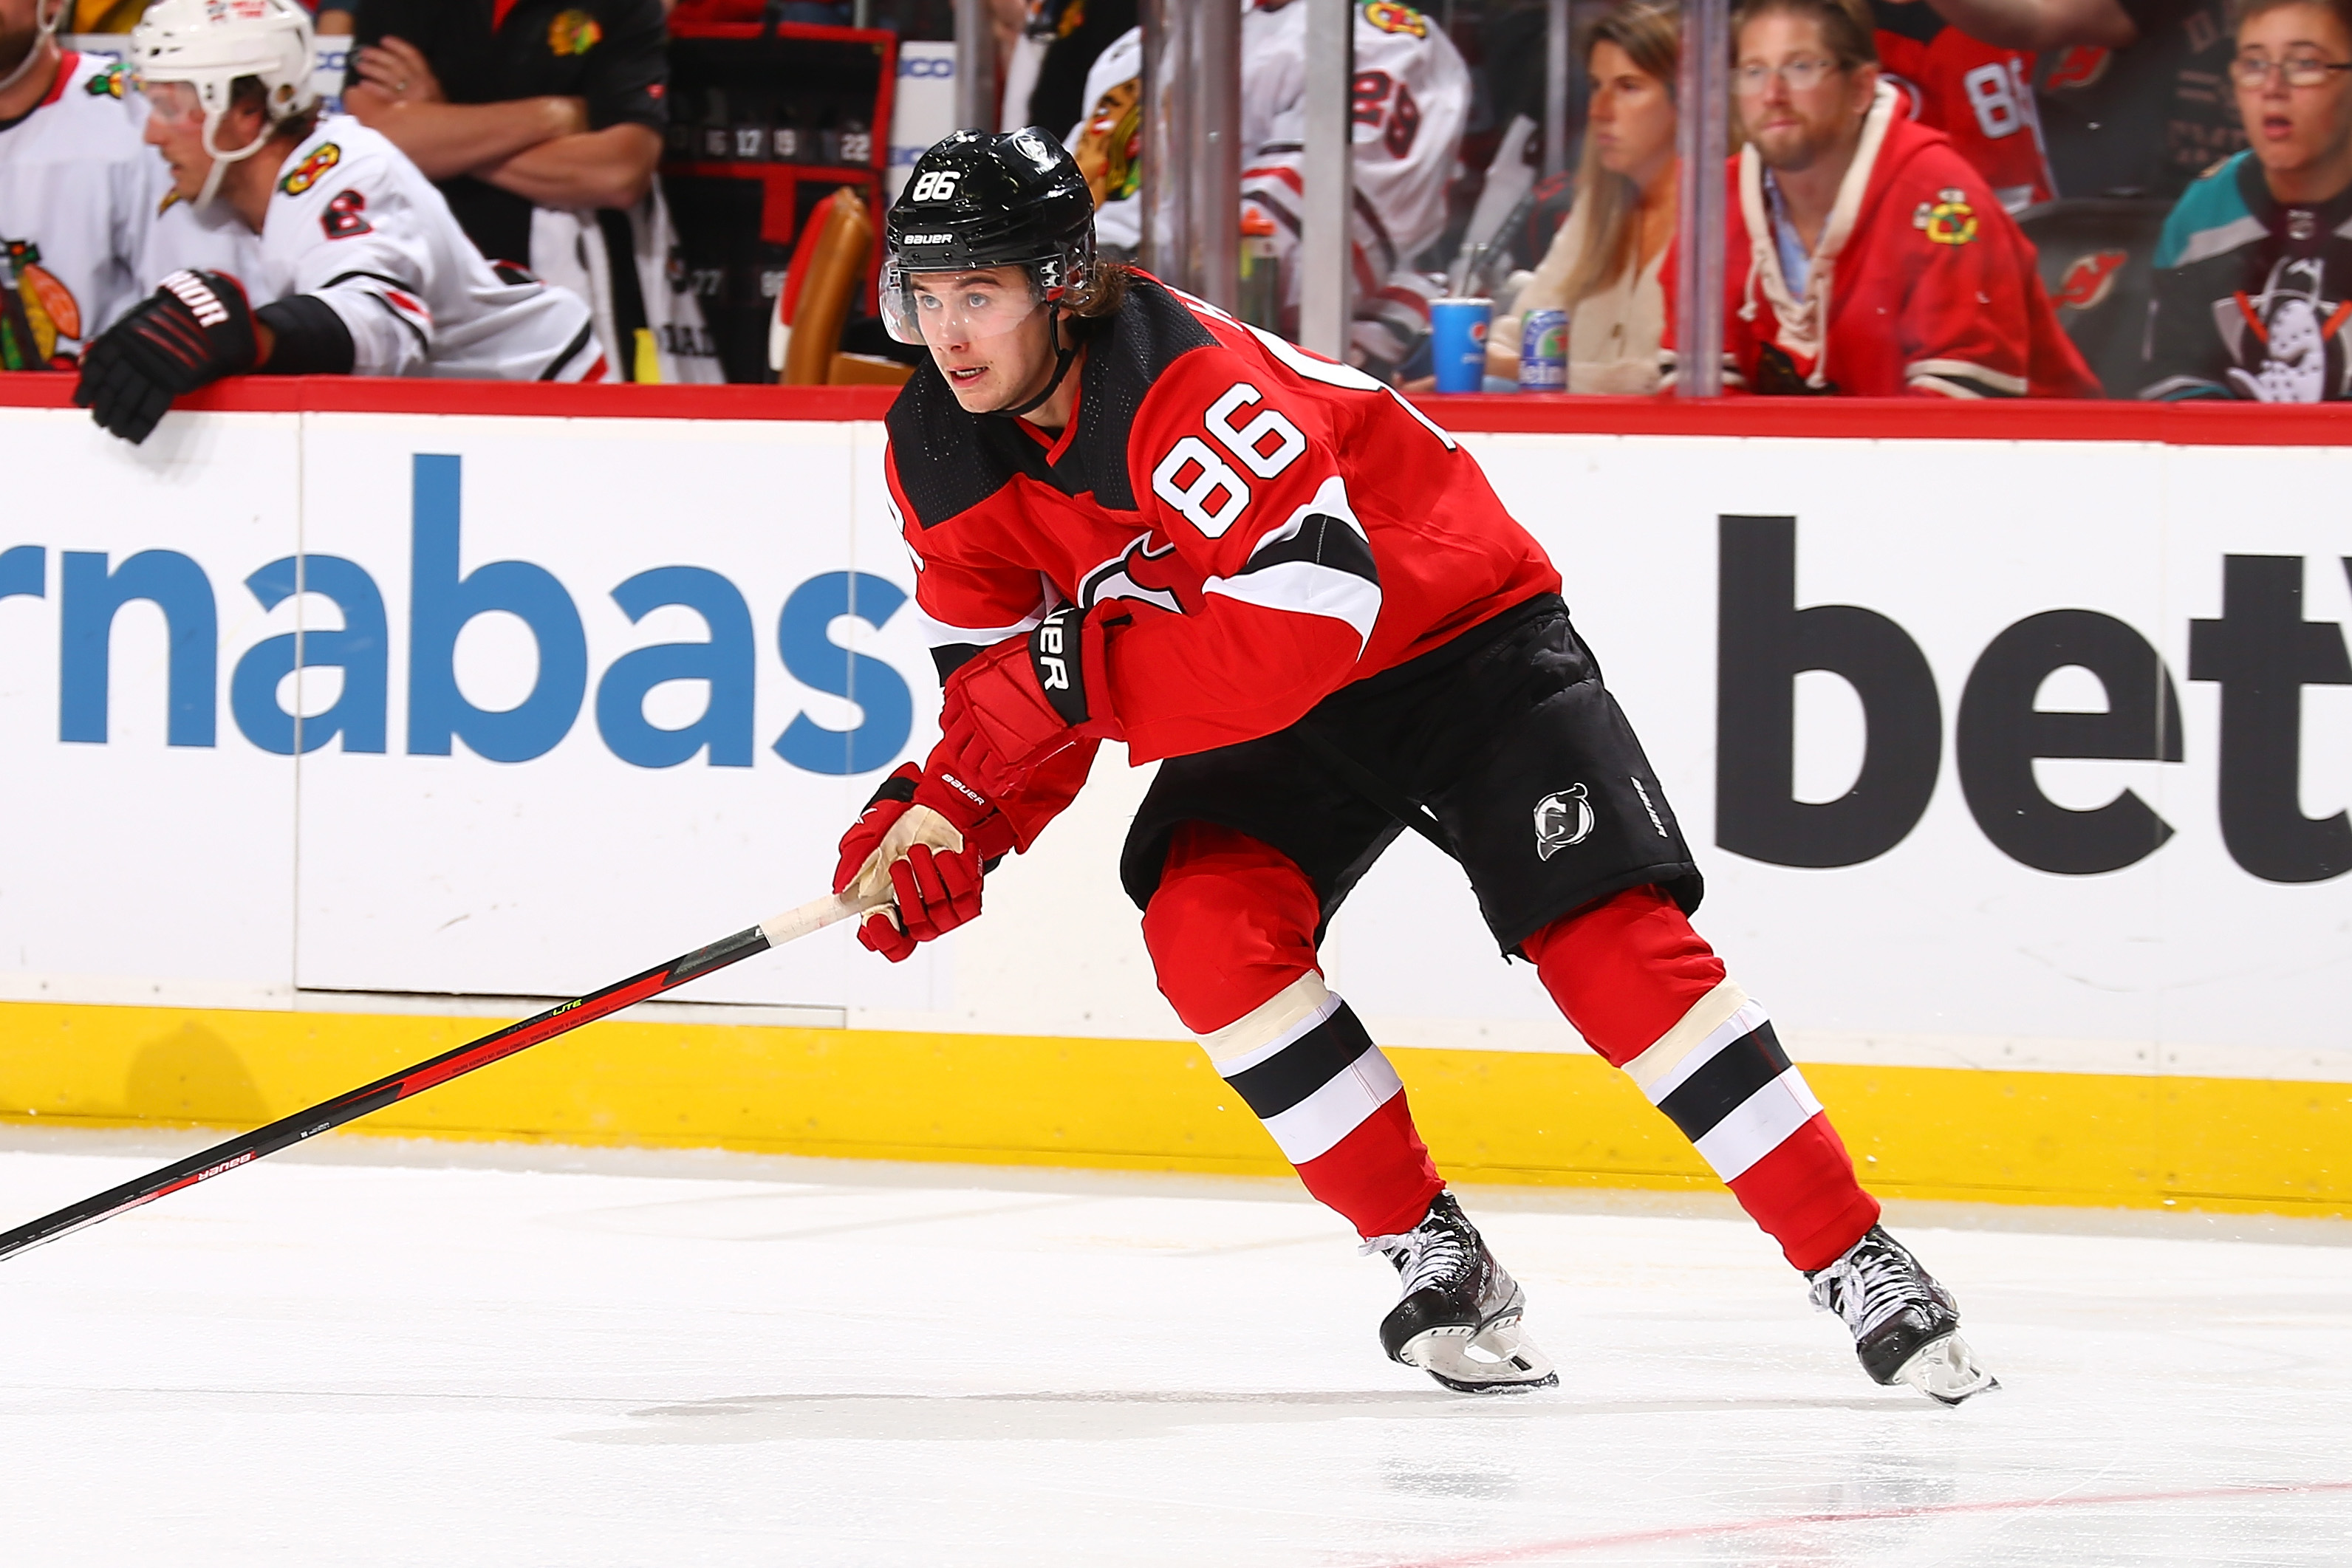 Jack Hughes #86 of the New Jersey Devils in action against the Chicago Blackhawks at Prudential Center on October 15, 2021 in Newark, New Jersey. New Jersey Devils defeated the Chicago Blackhawks 4-3 in OT.